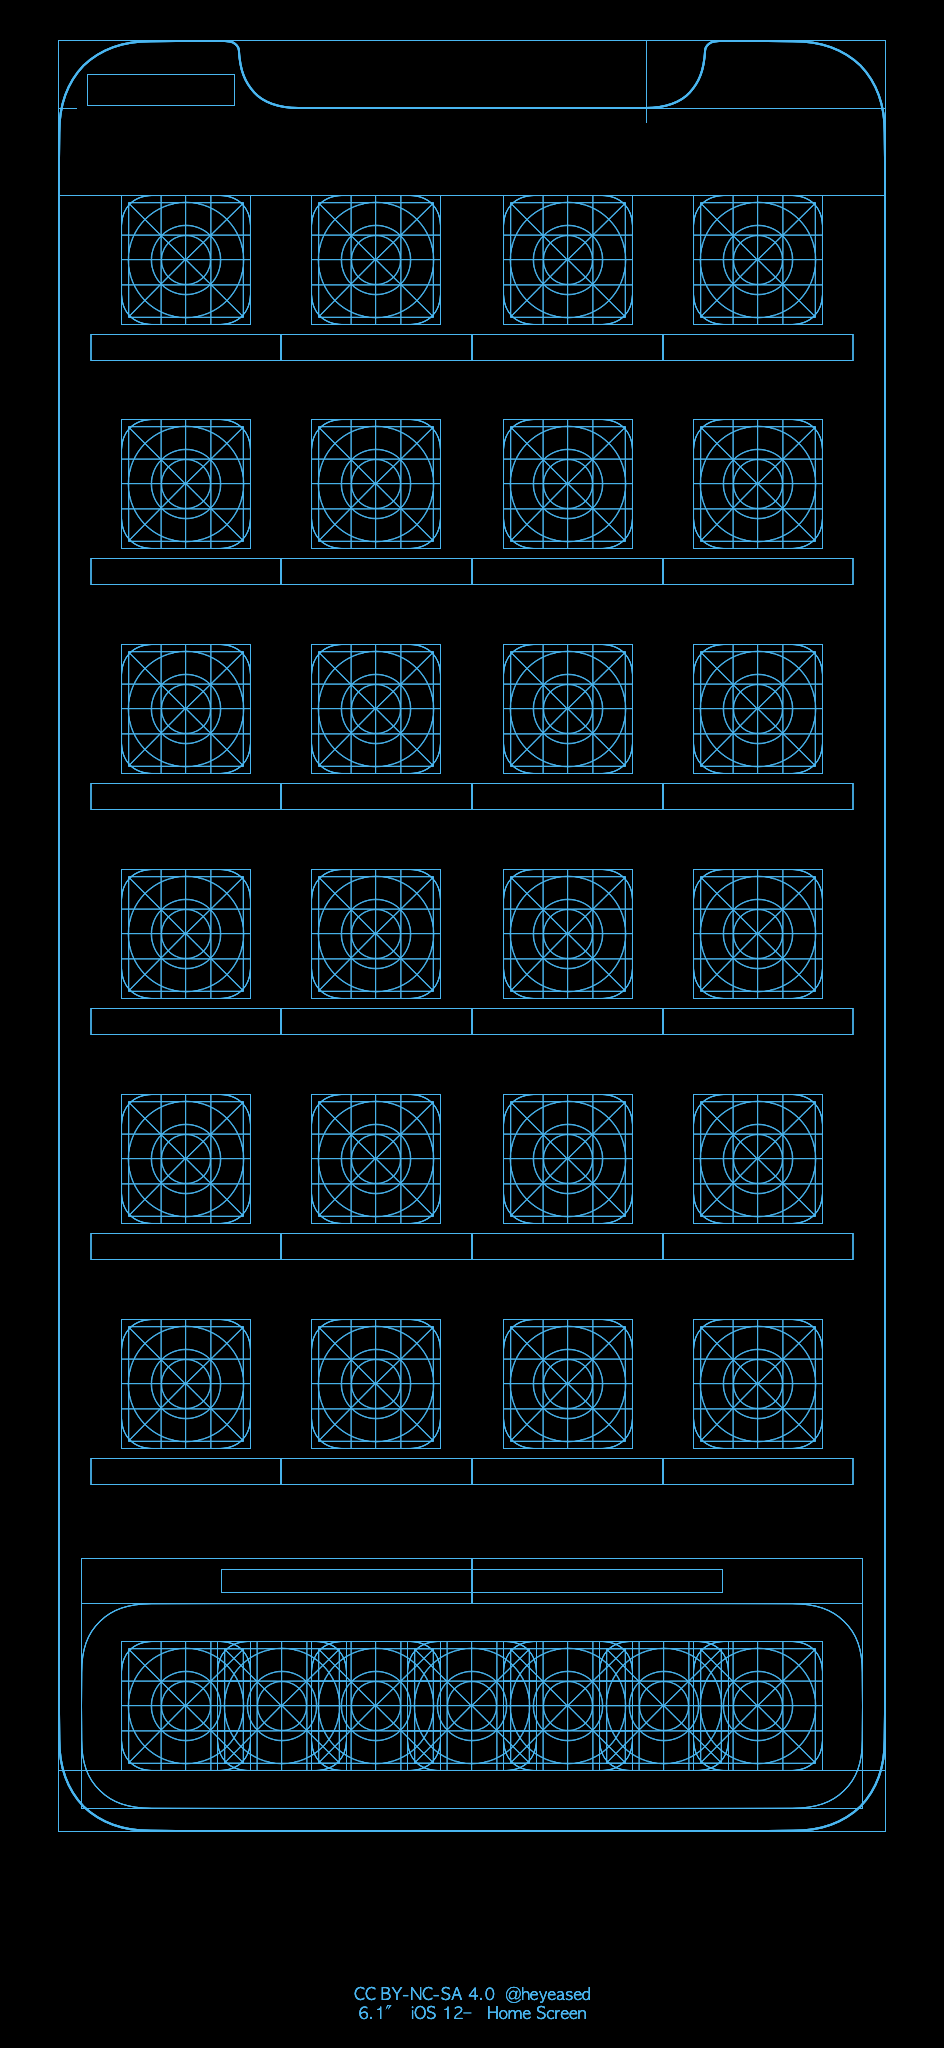 設計図の壁紙r Blueprint R Mysterious Iphone Wallpaper